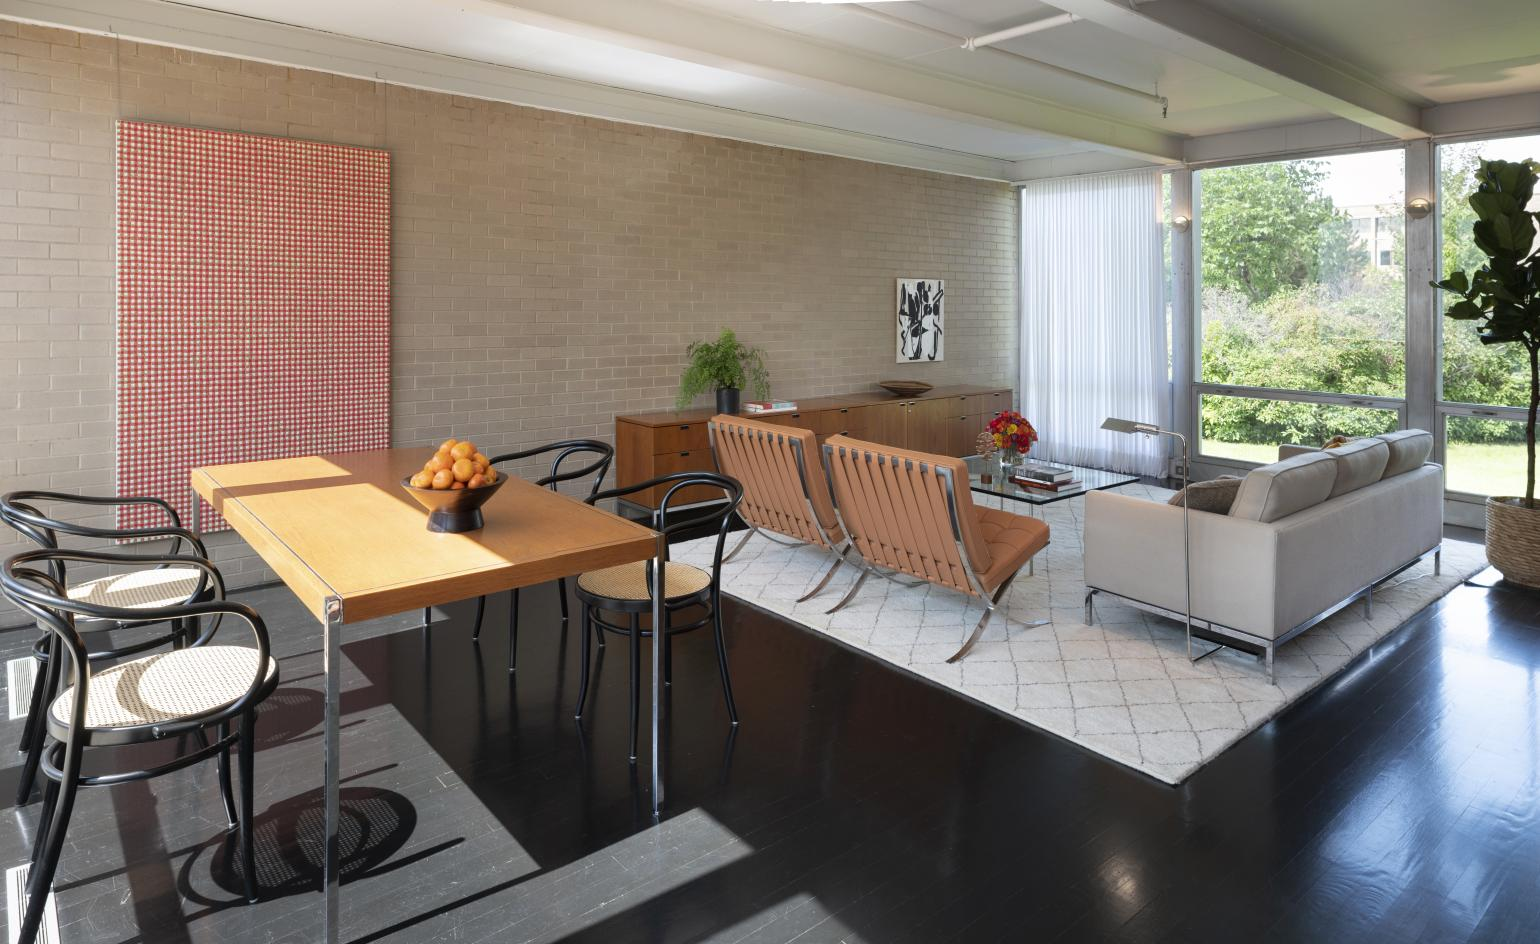 Mies van der Rohe's McCormick House is brought back to life at the Elmhurst Art Museum